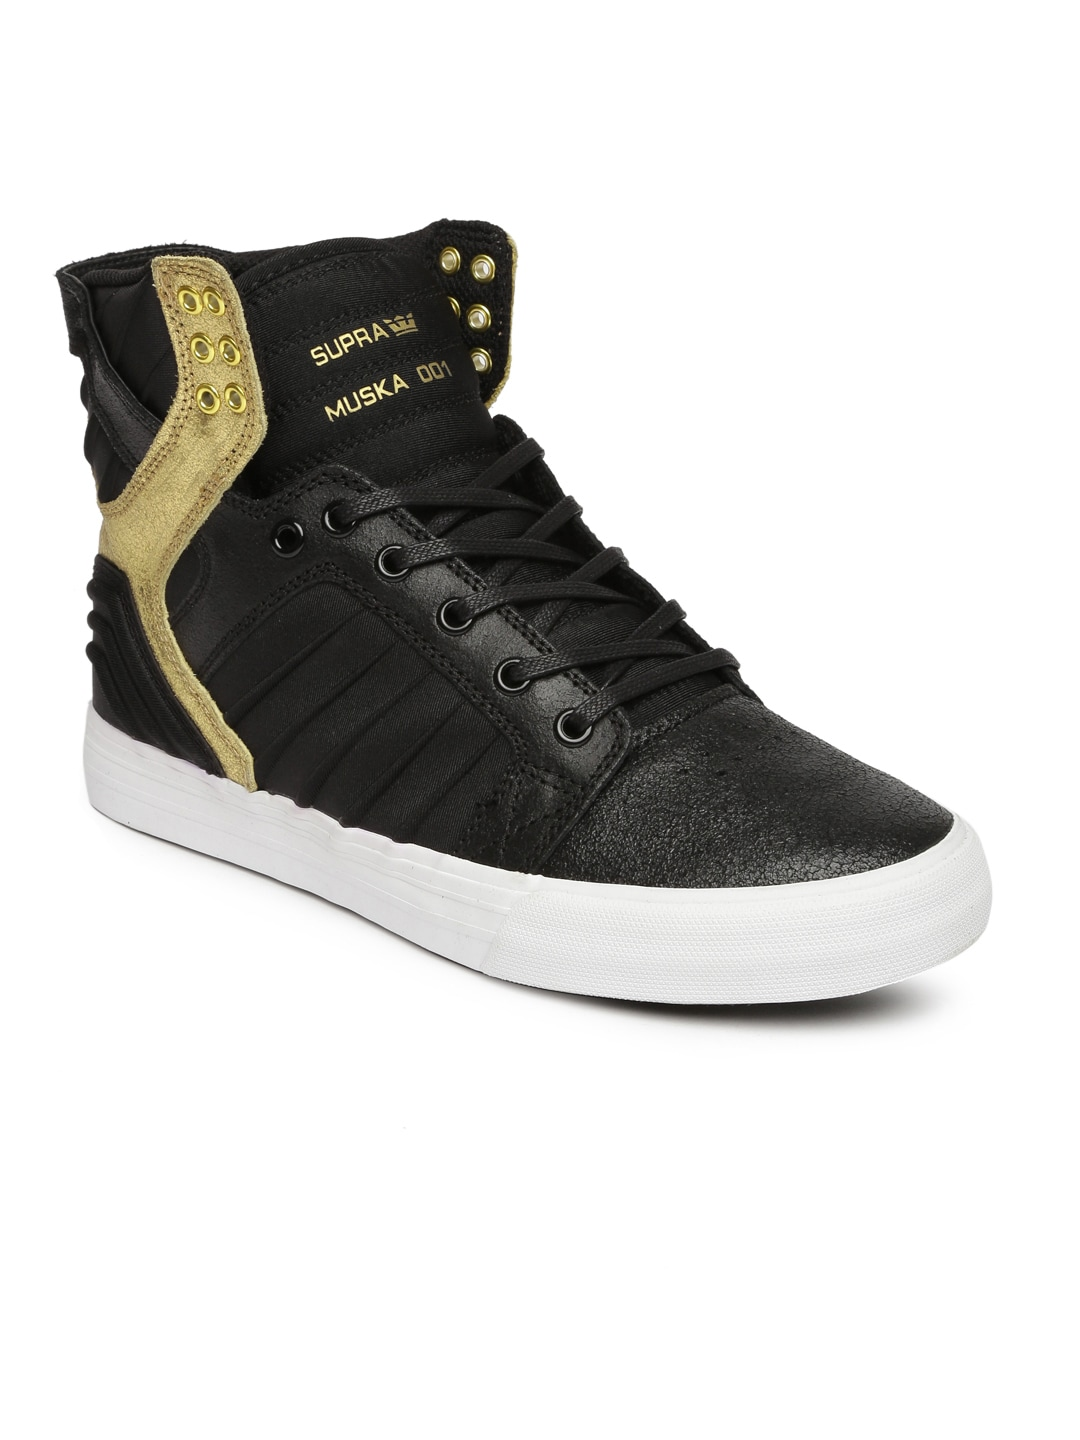 73807628629f Supra Skytop Shoes - Buy Supra Skytop Shoes online in India